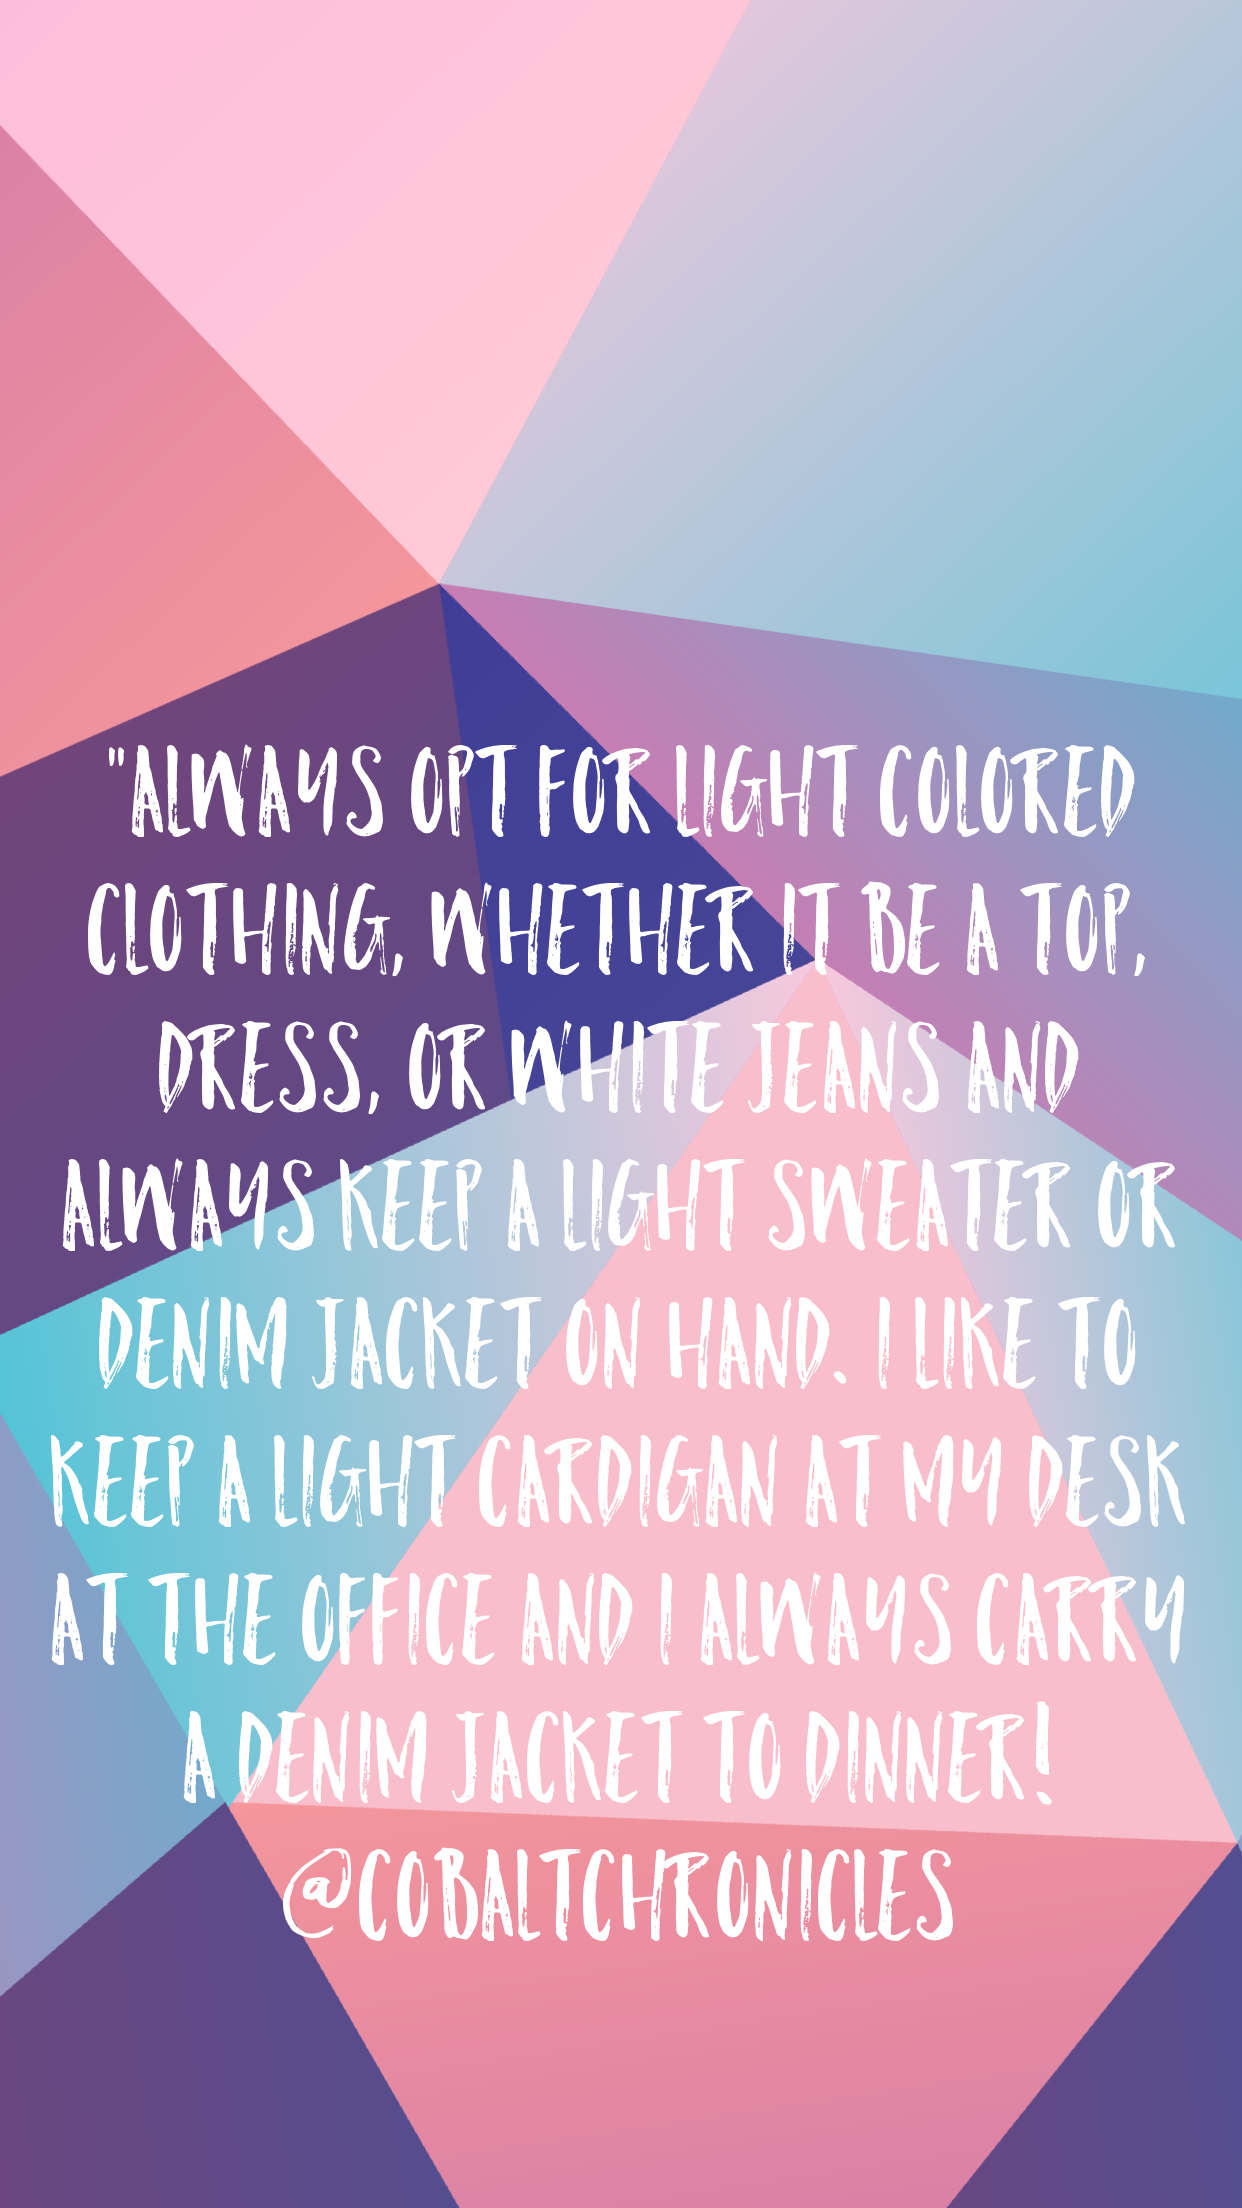 """Always opt for light colored clothing, whether it be a top, dress, or white jeans and always keep a light sweater or denim jacket on hand. I like to keep a light cardigan at my desk at the office and I always carry a denim jacket to dinner!"""